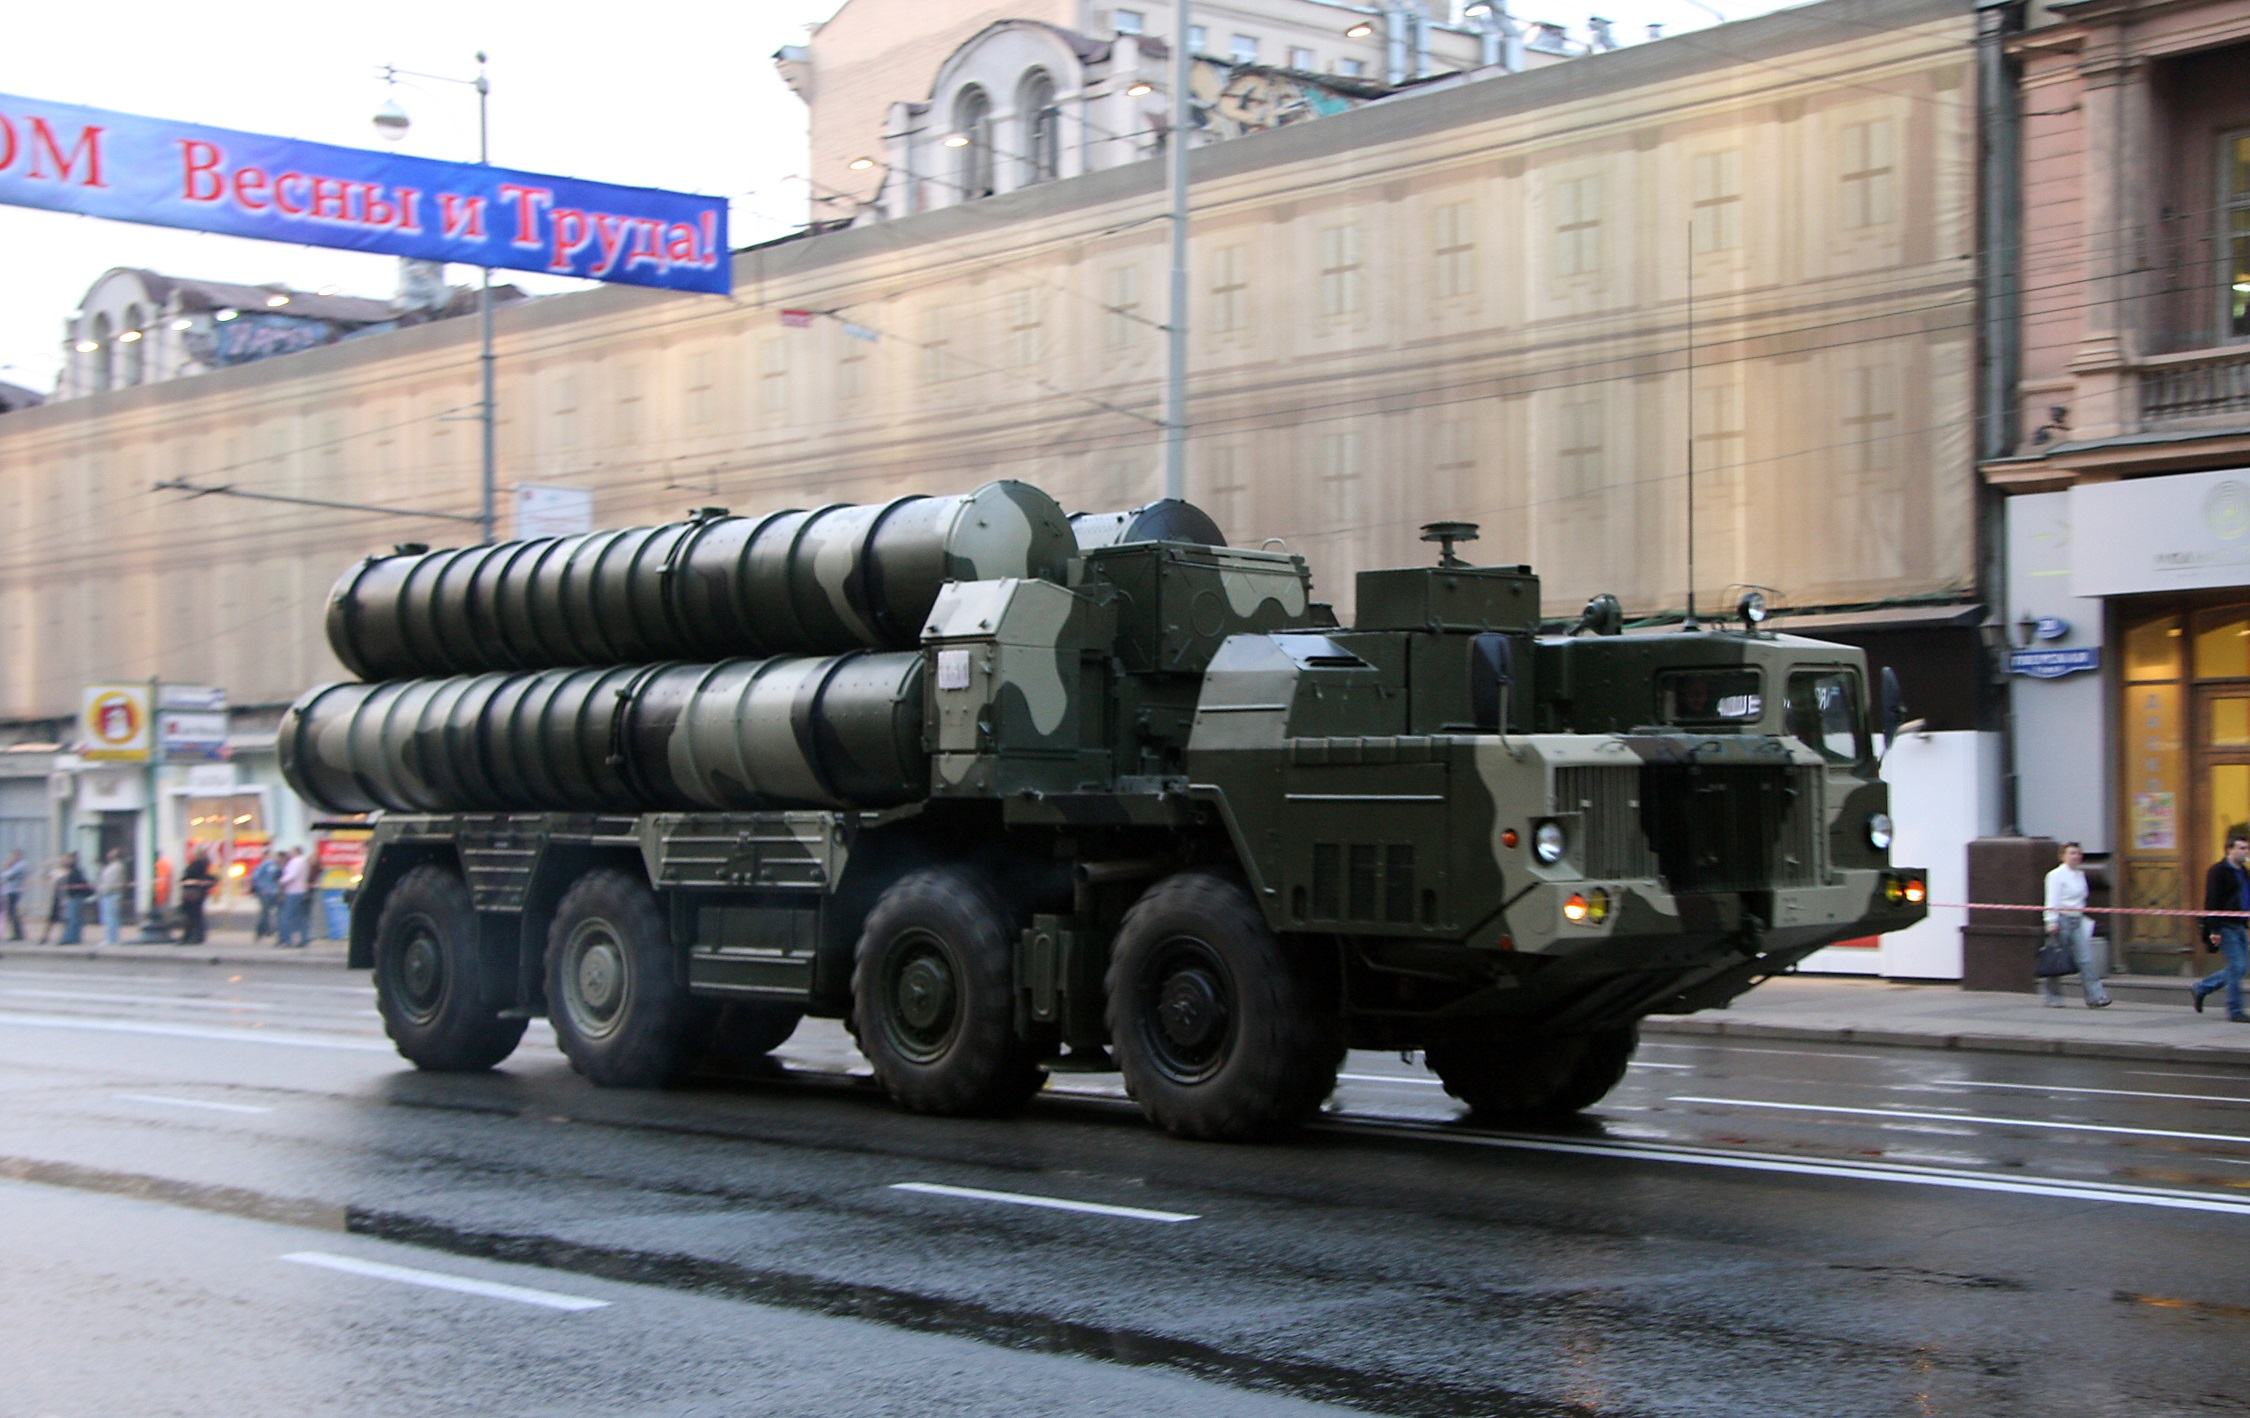 S-300 missile system - Wikipedia